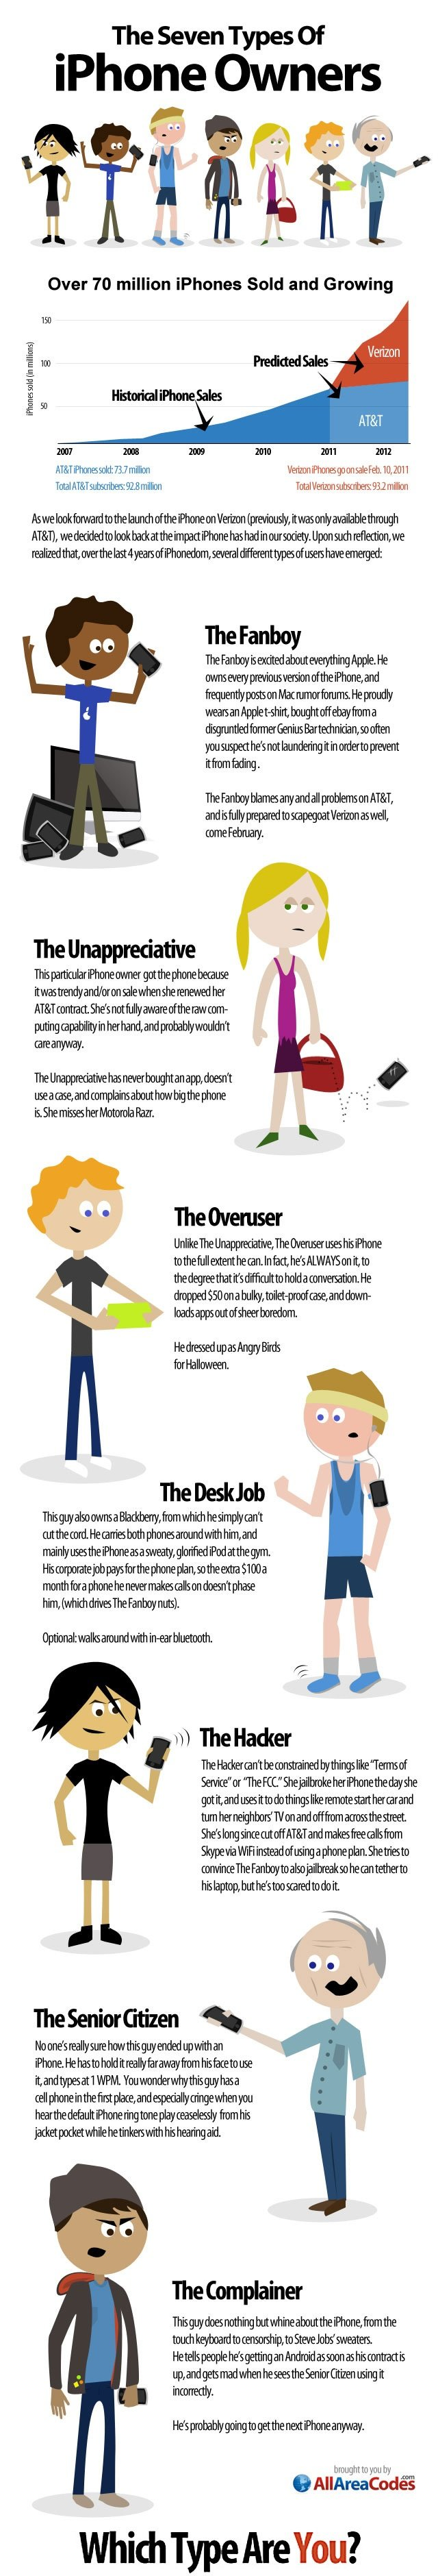 The 7 Types of #IPhone Owners #Apple #Infographic